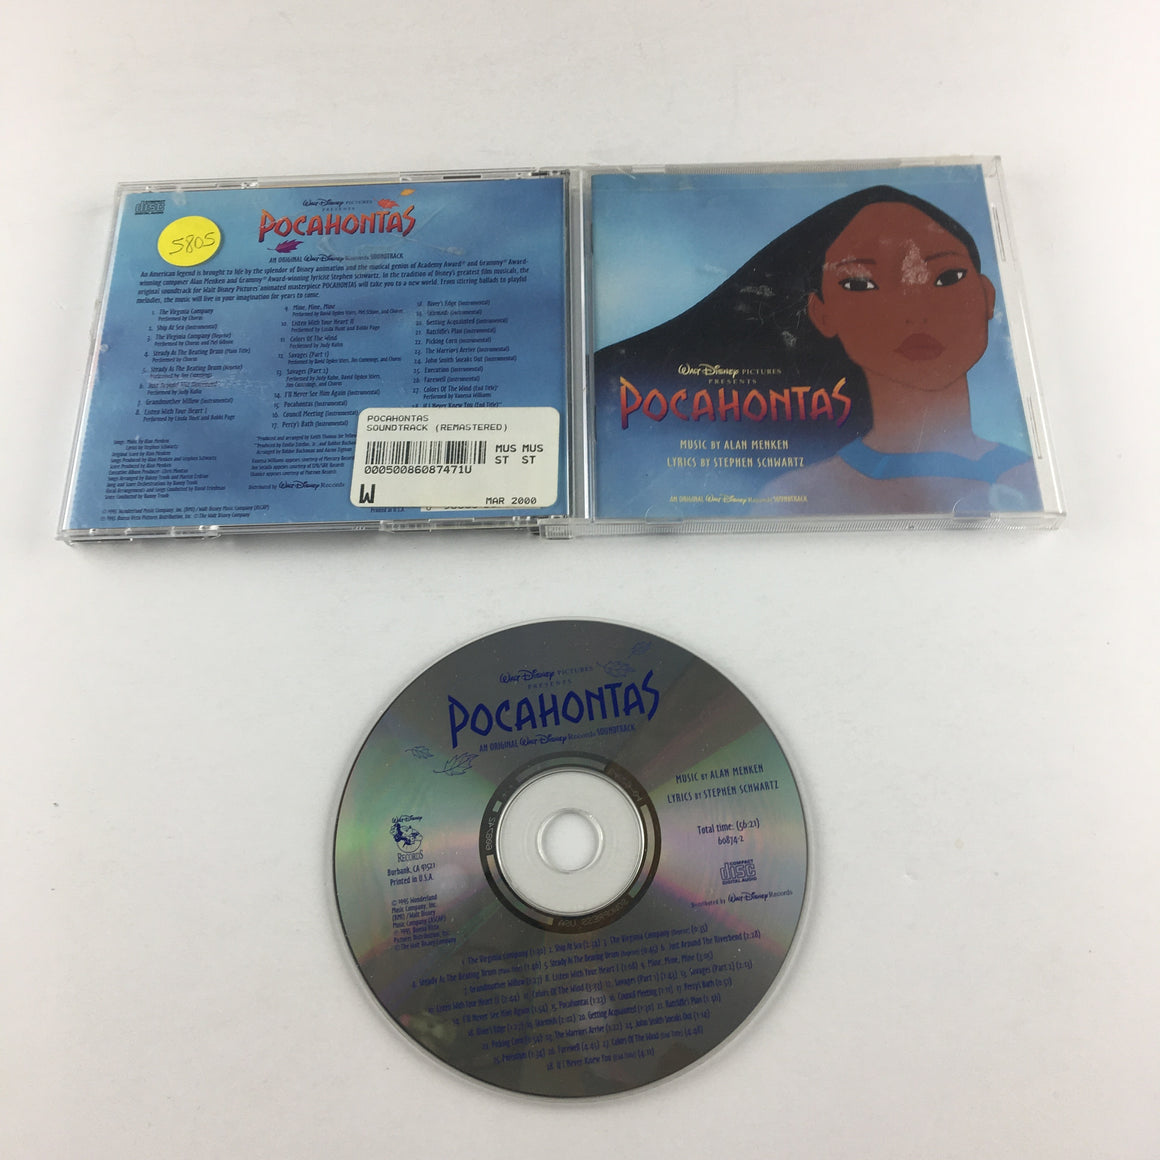 Menken, Schwartz Pocahontas (An Original Disney Soundtrack) Used CD VG+ 60874-7